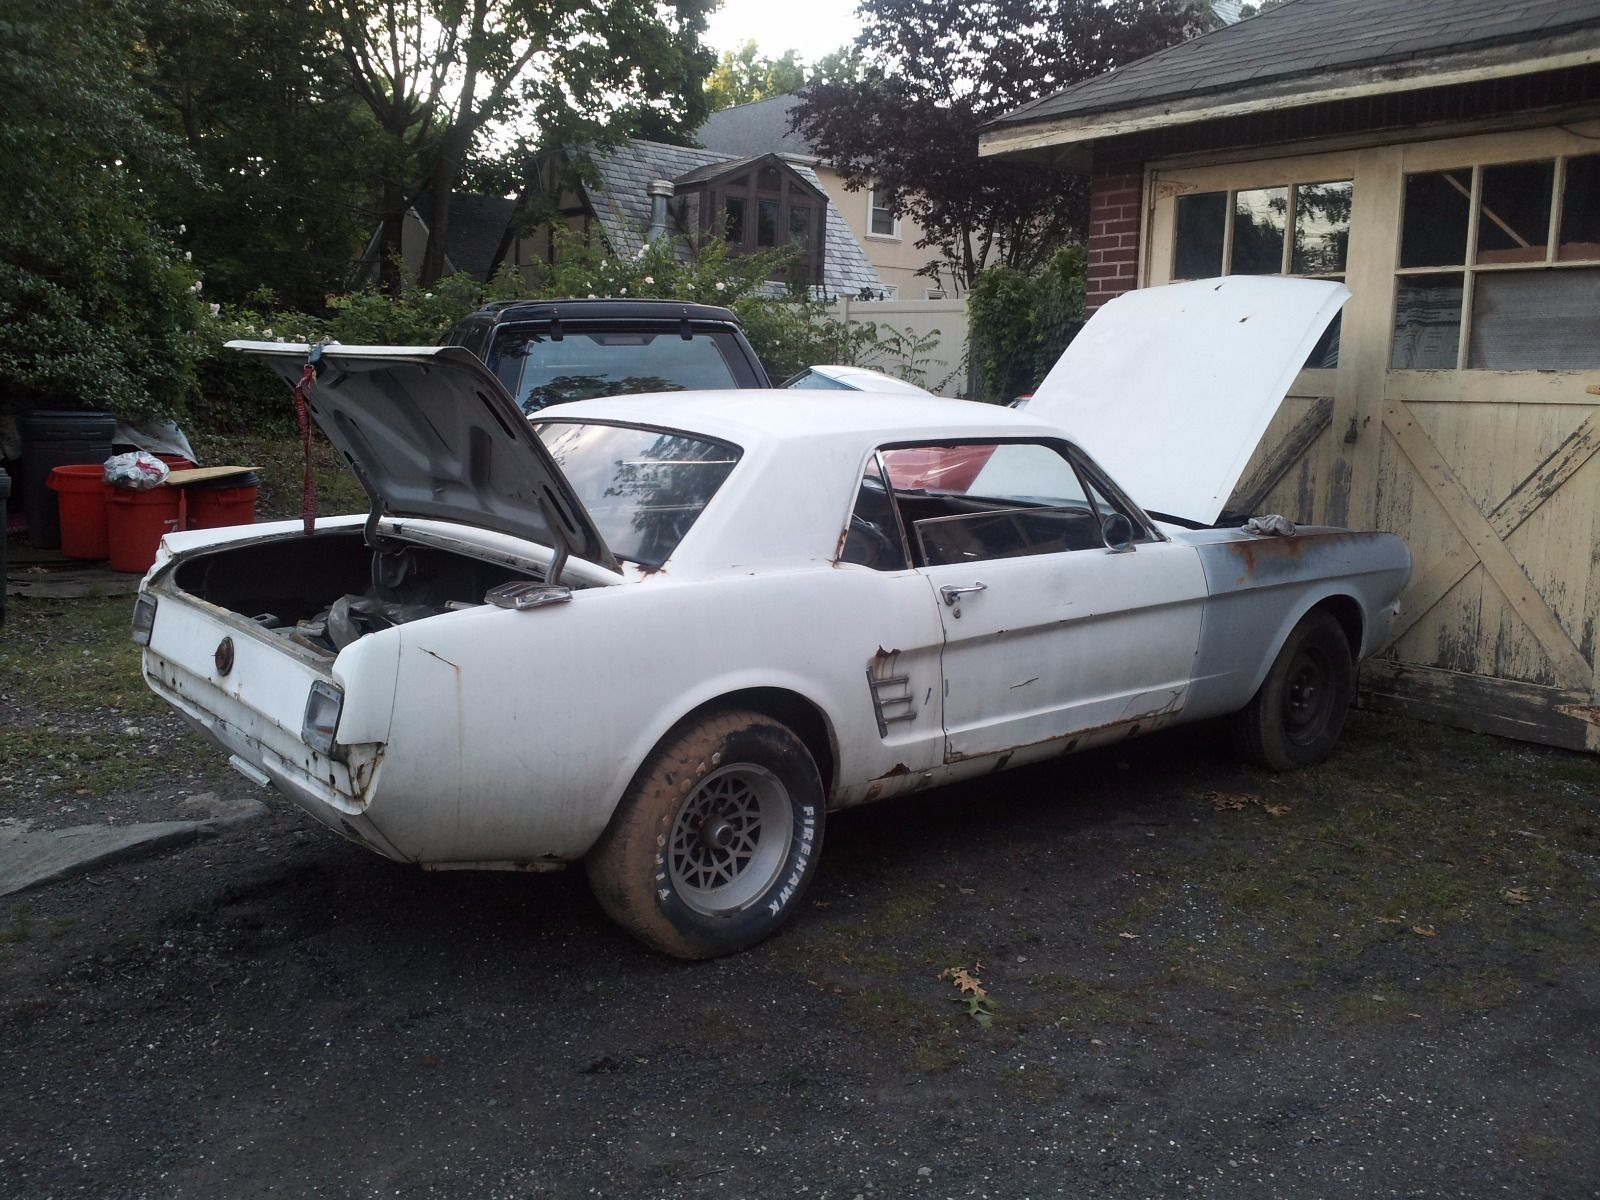 Ford Mustang Project Car For Sale